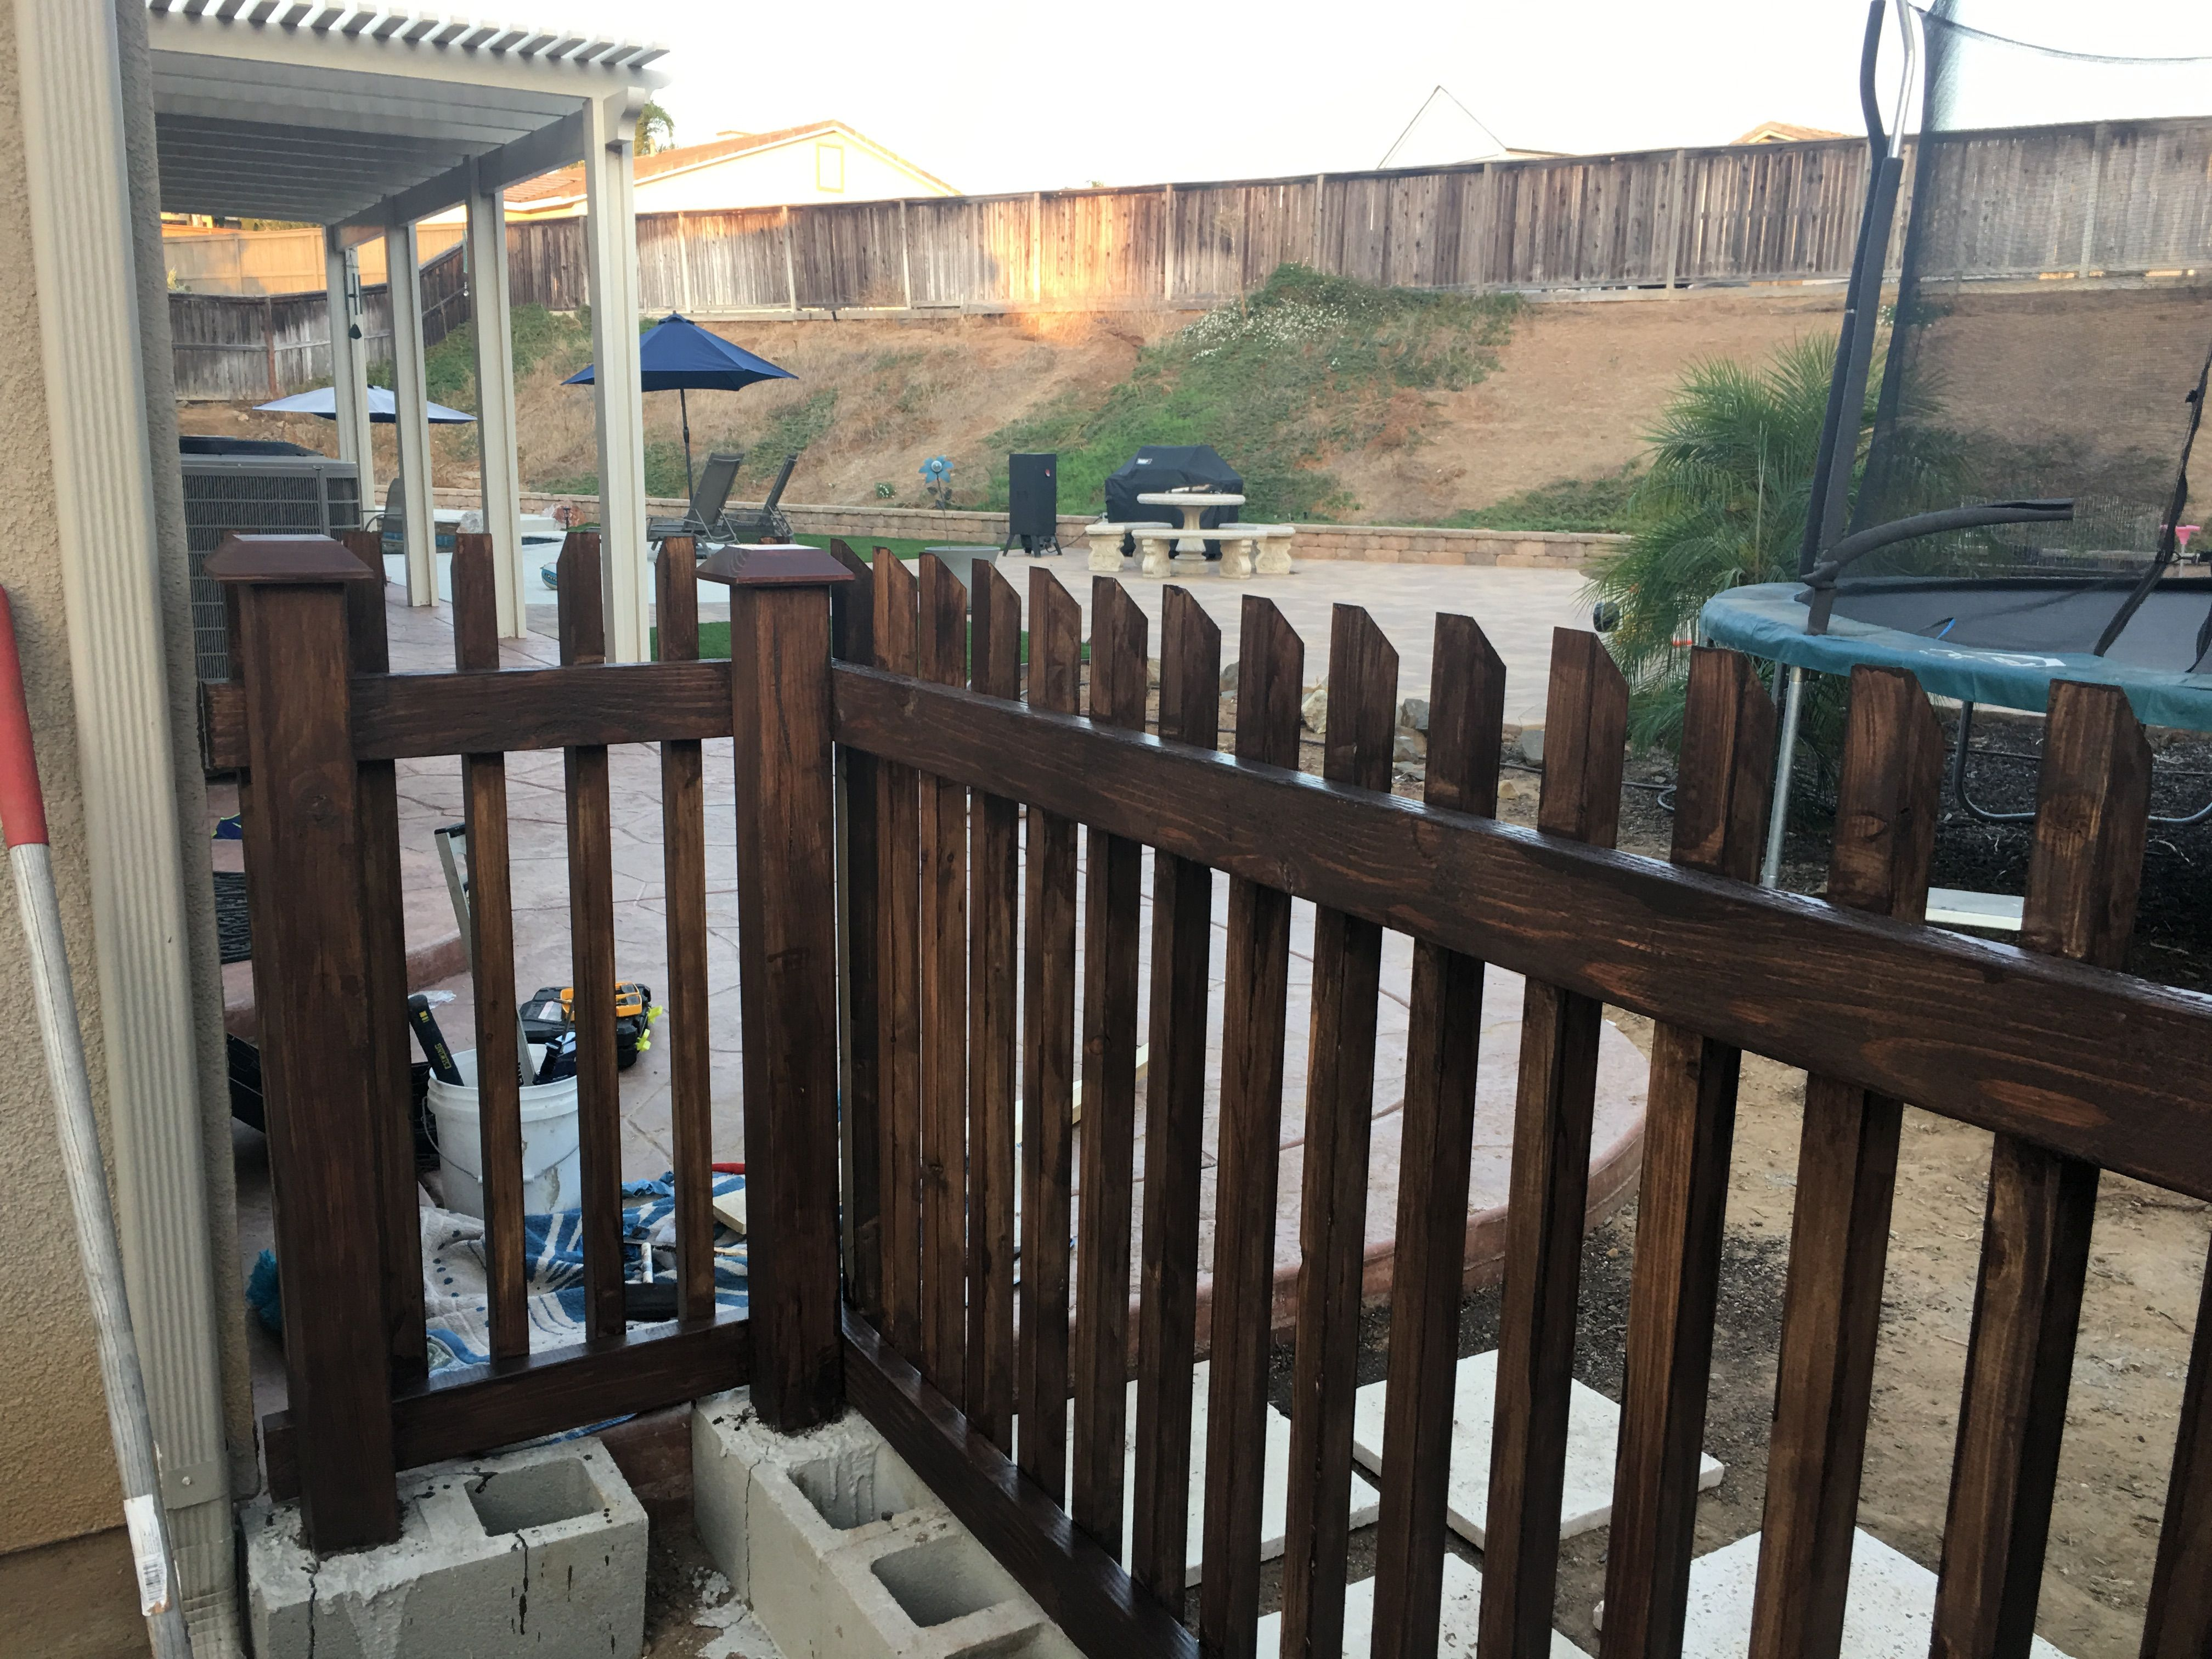 Cinder block wood fence easy way to make a fence